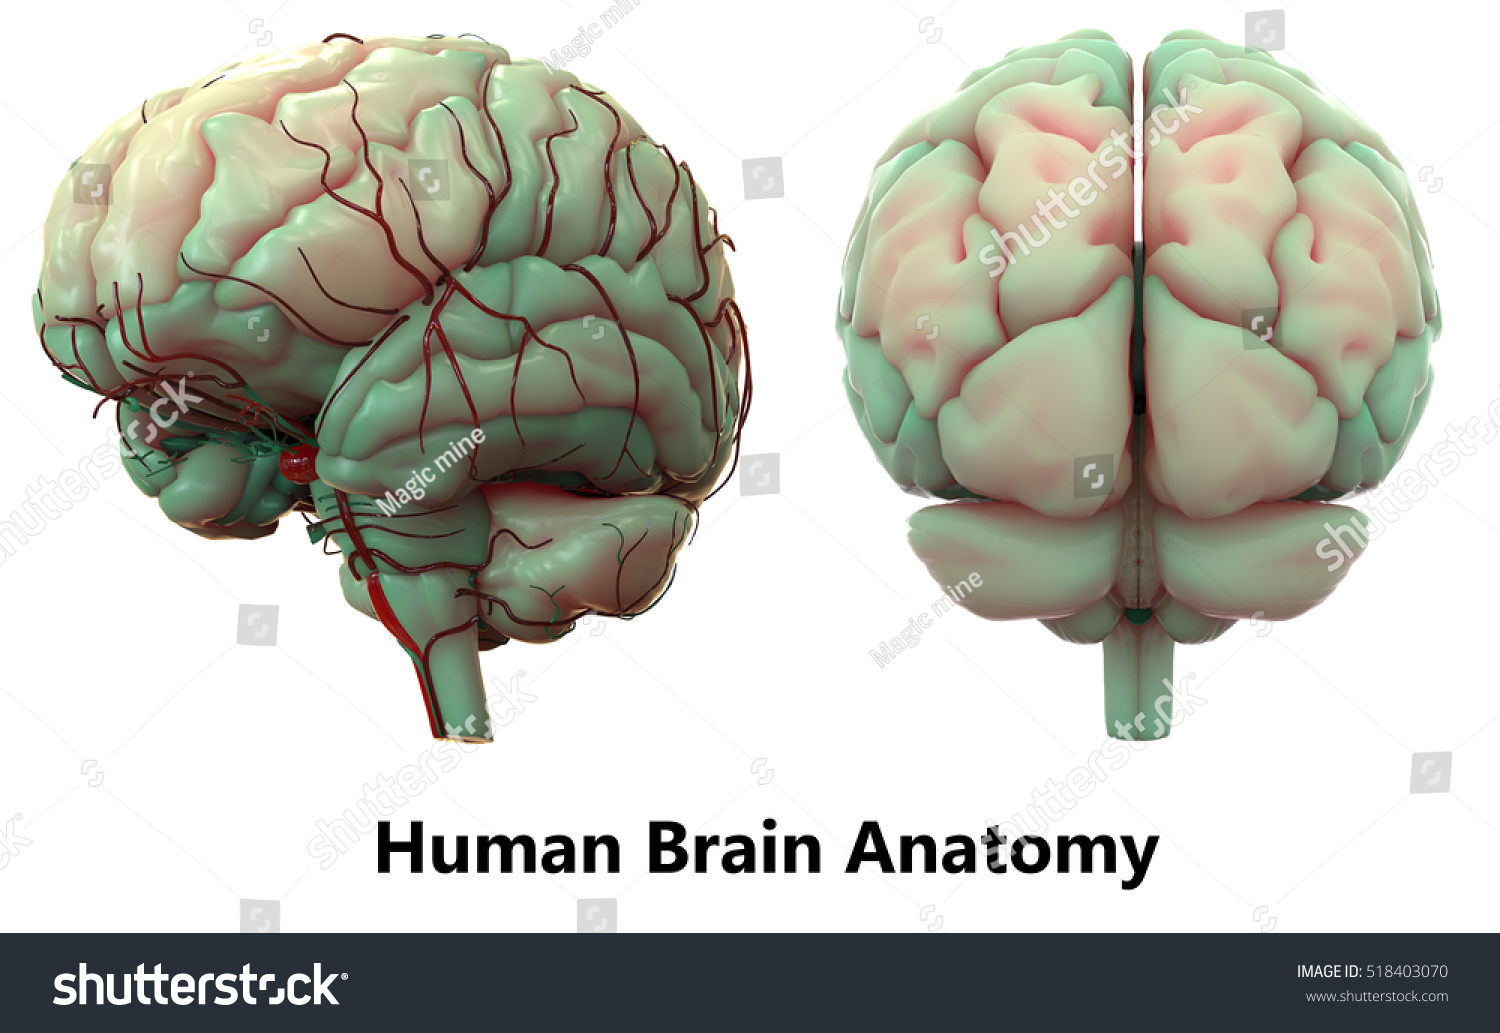 Human Brain Anatomy 3 D Stock Illustration 518403070 - Shutterstock